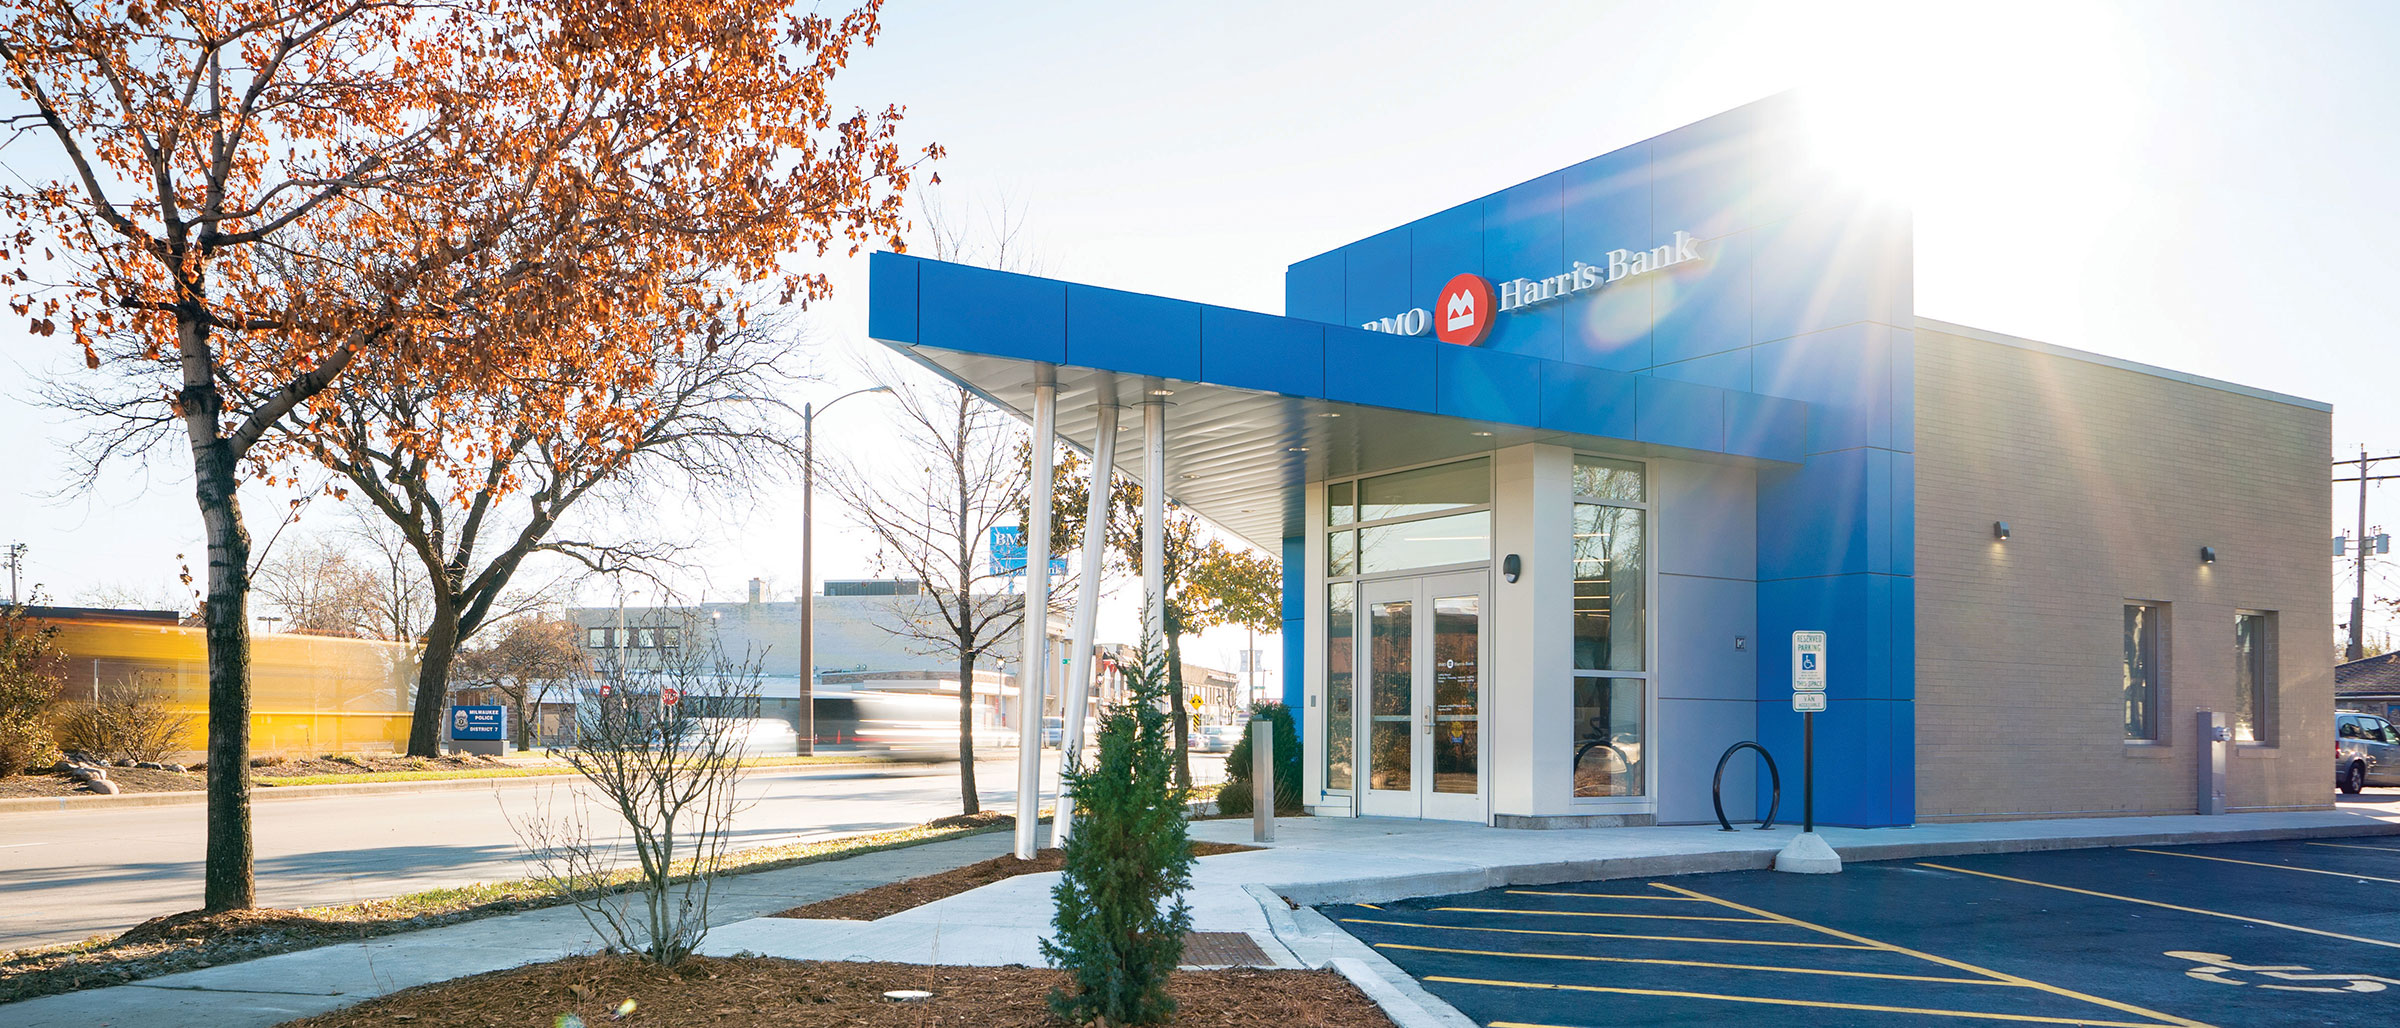 BMO Harris Bank's Sherman Park branch has an award-winning design, and is the first Wisconsin location to feature BMO's Smart Branch concept.